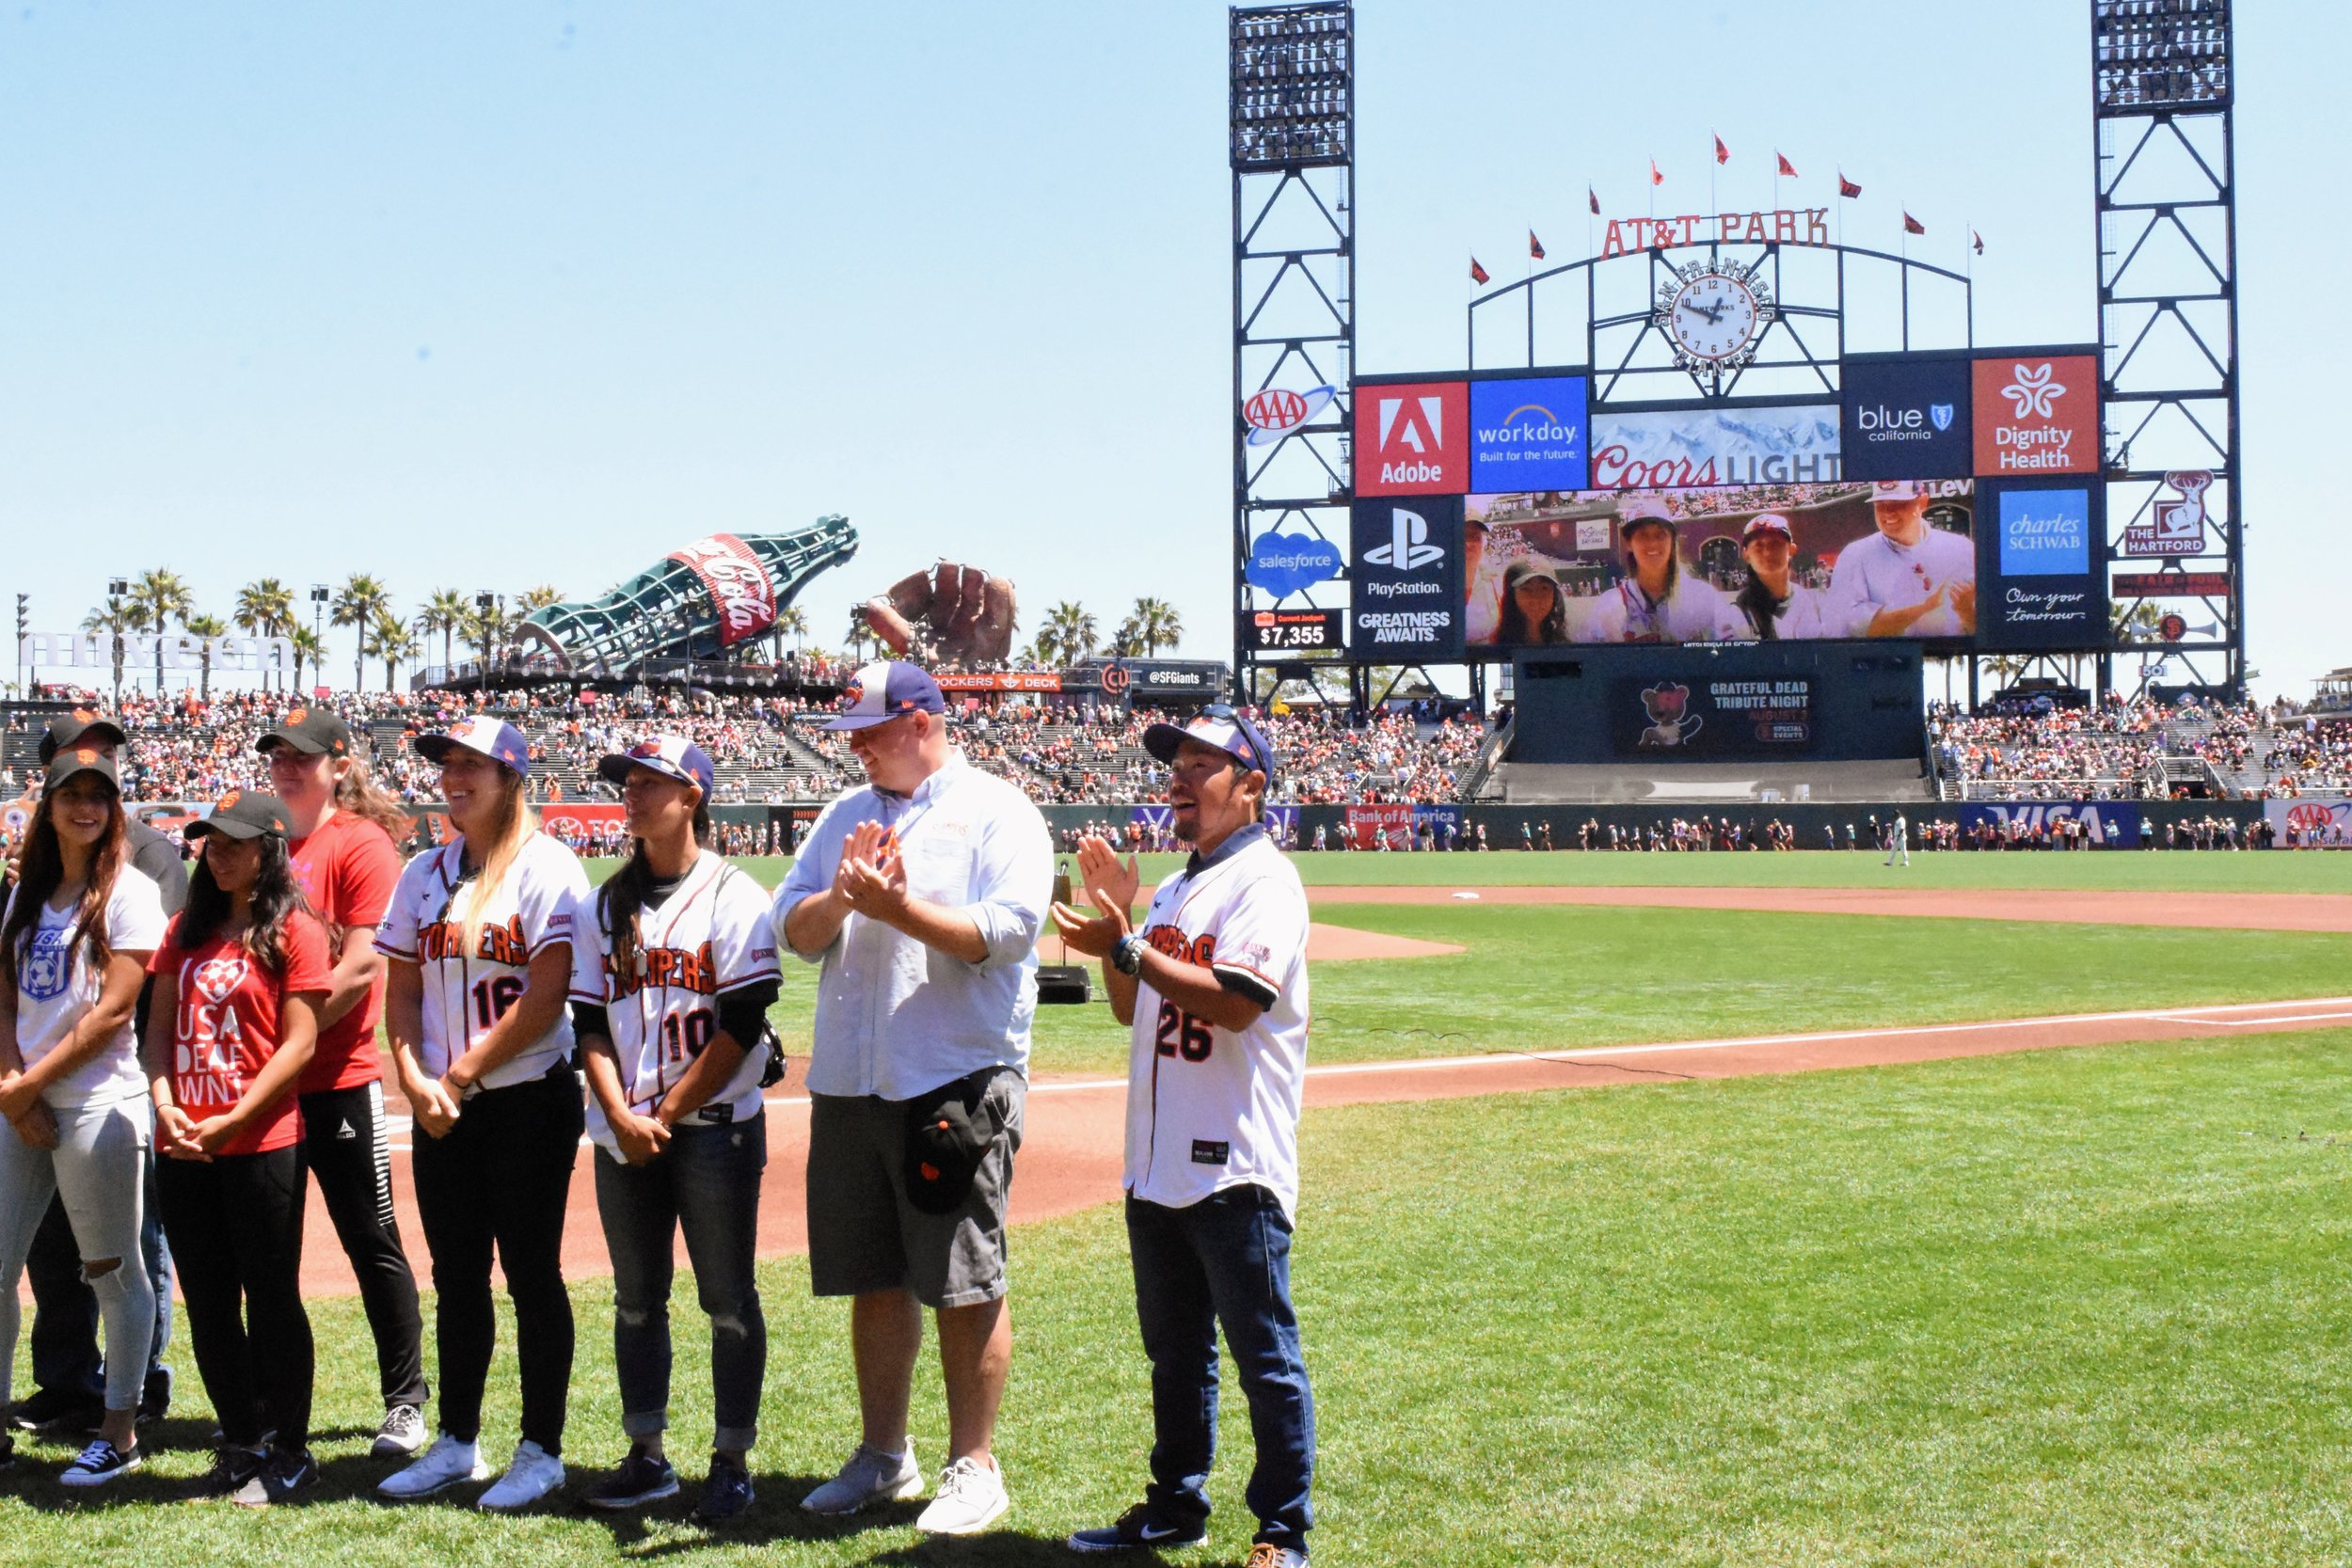 Stacy Piagno, Kelsie Whitmore,Theo Fightmaster and Takashi Miyoshi stand alongside the Women's Deaf National Soccer Team during a pre-game ceremony at AT&T Park on Sunday. (James W. Toy III / Sonoma Stompers)